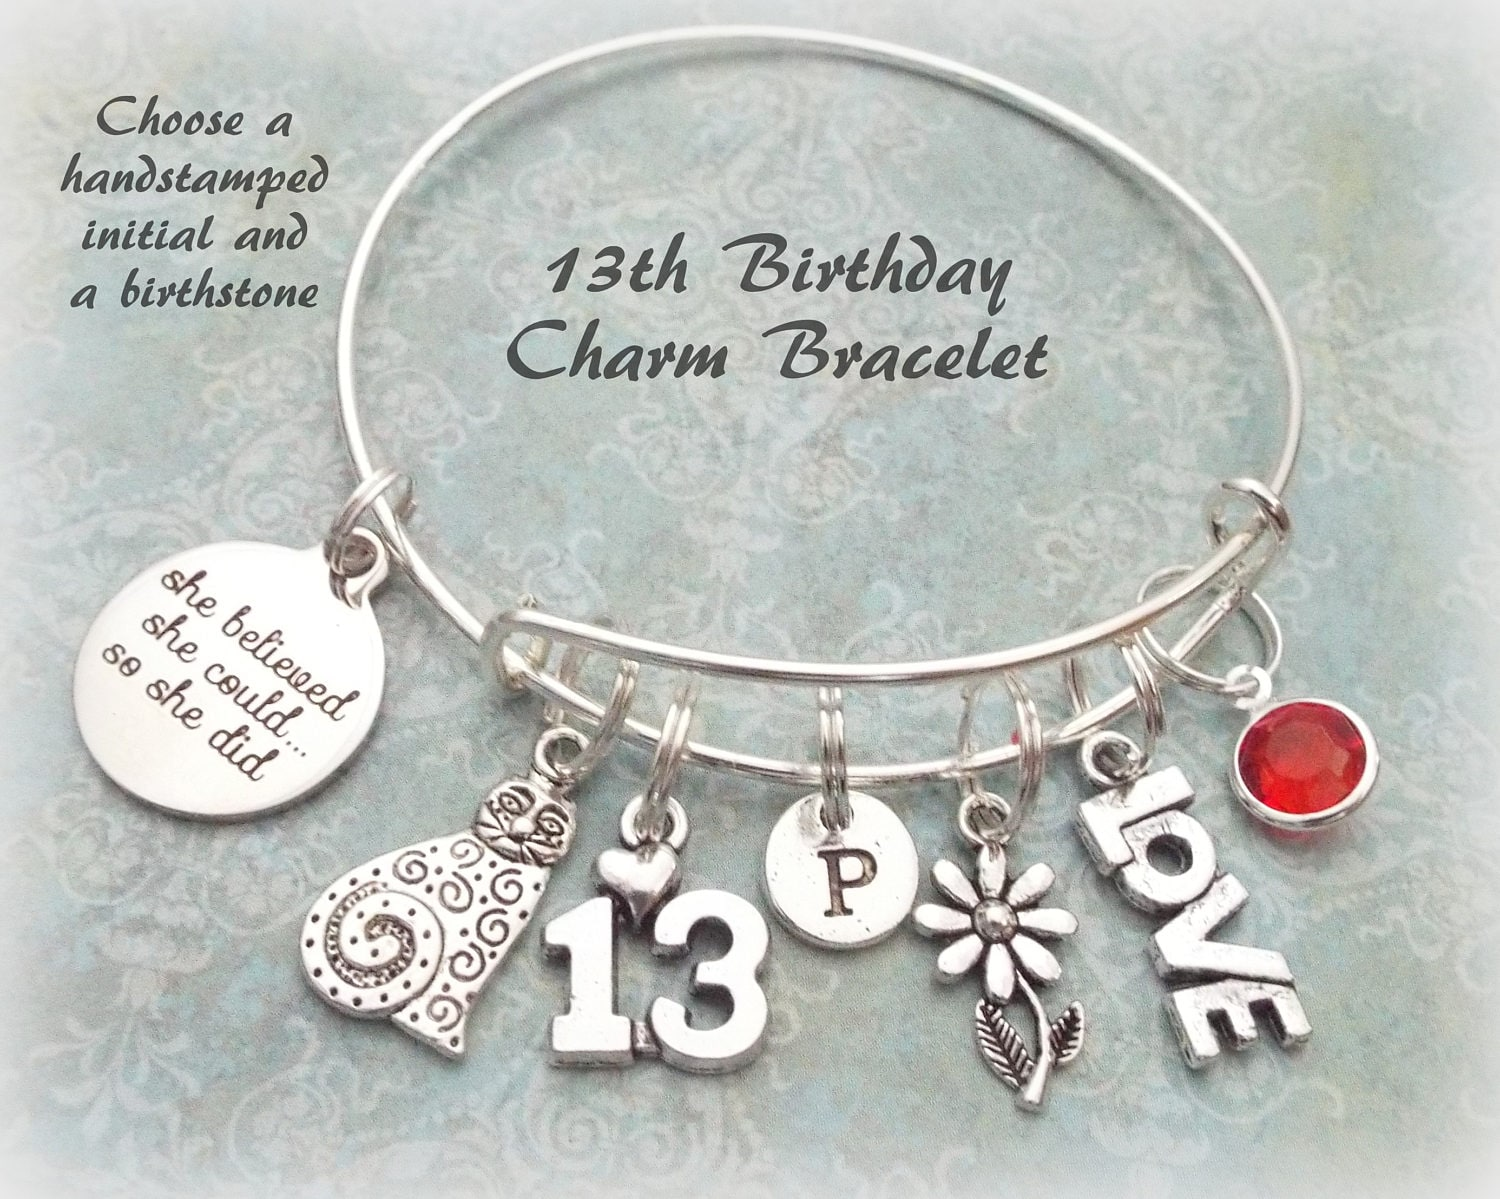 Birthday Gift For 13 Year Old Daughter Cat Charm Bracelet Personalized Jewelry 13th Gallery Photo